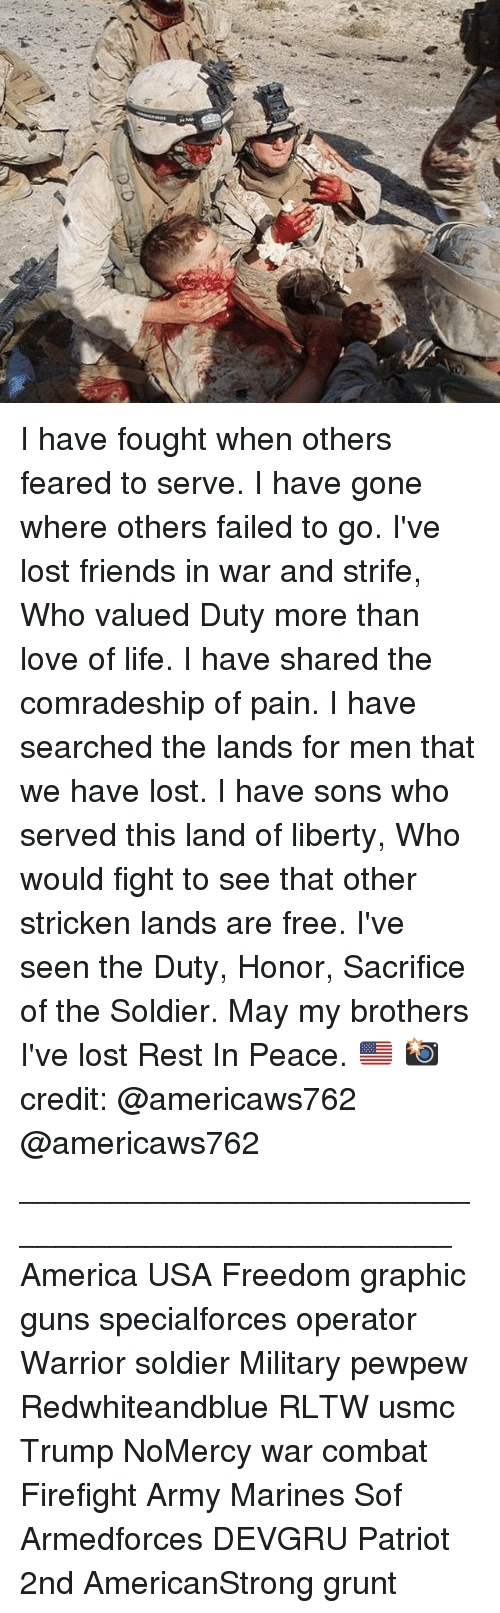 Combate: I have fought when others feared to serve. I have gone where others failed to go. I've lost friends in war and strife, Who valued Duty more than love of life. I have shared the comradeship of pain. I have searched the lands for men that we have lost. I have sons who served this land of liberty, Who would fight to see that other stricken lands are free. I've seen the Duty, Honor, Sacrifice of the Soldier. May my brothers I've lost Rest In Peace. 🇺🇸 📸 credit: @americaws762 @americaws762 _________________________________________________ America USA Freedom graphic guns specialforces operator Warrior soldier Military pewpew Redwhiteandblue RLTW usmc Trump NoMercy war combat Firefight Army Marines Sof Armedforces DEVGRU Patriot 2nd AmericanStrong grunt